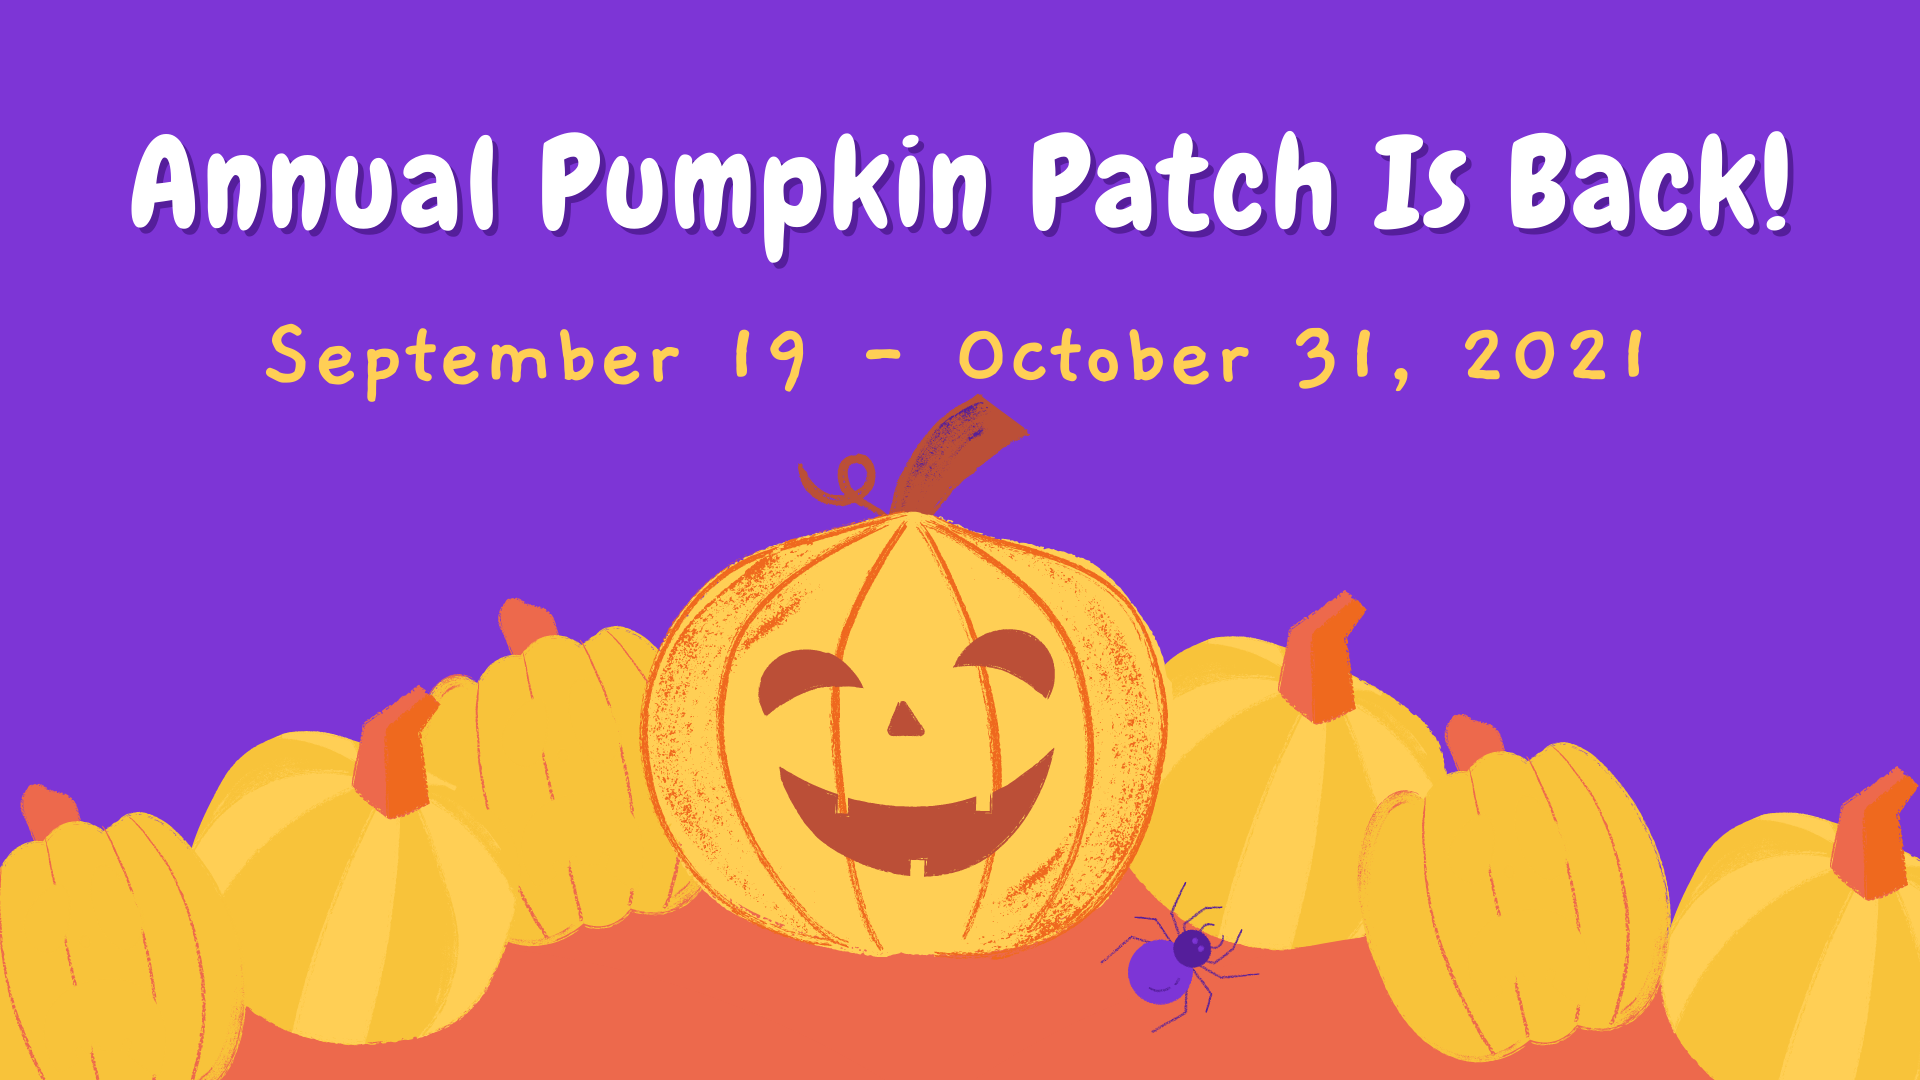 Annual Pumpkin Patch Is Back!